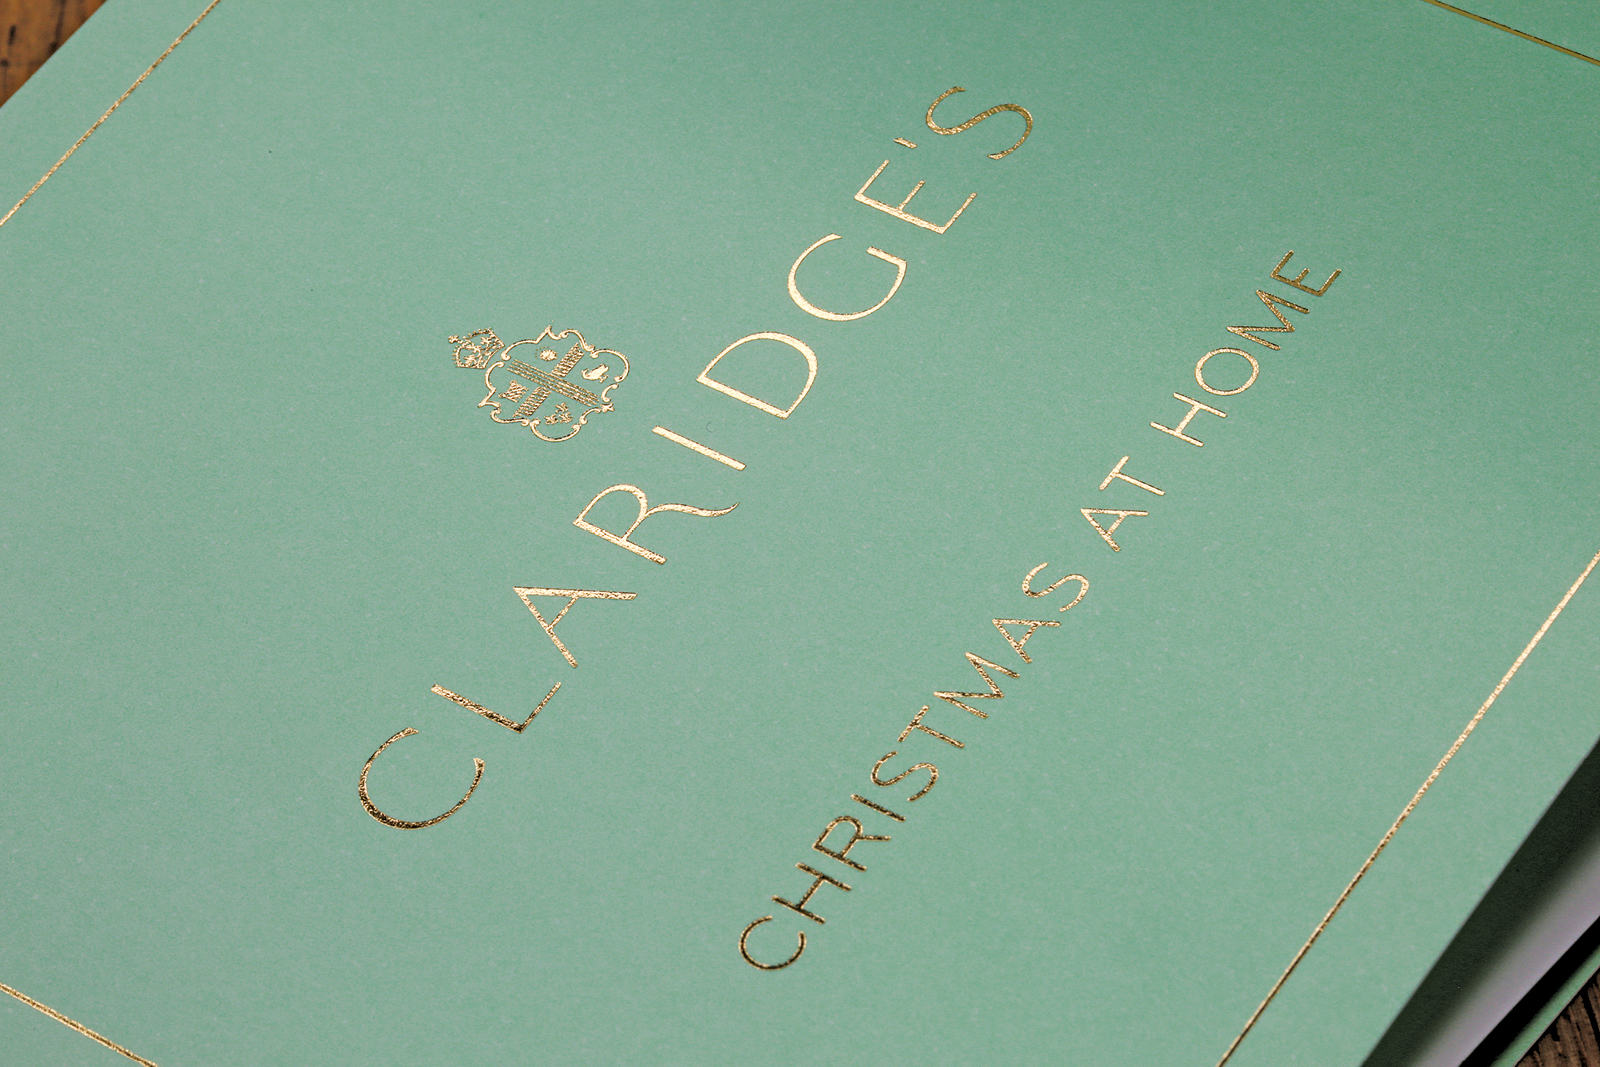 Christmas gifts concertina print design for Claridge's Hotel, London